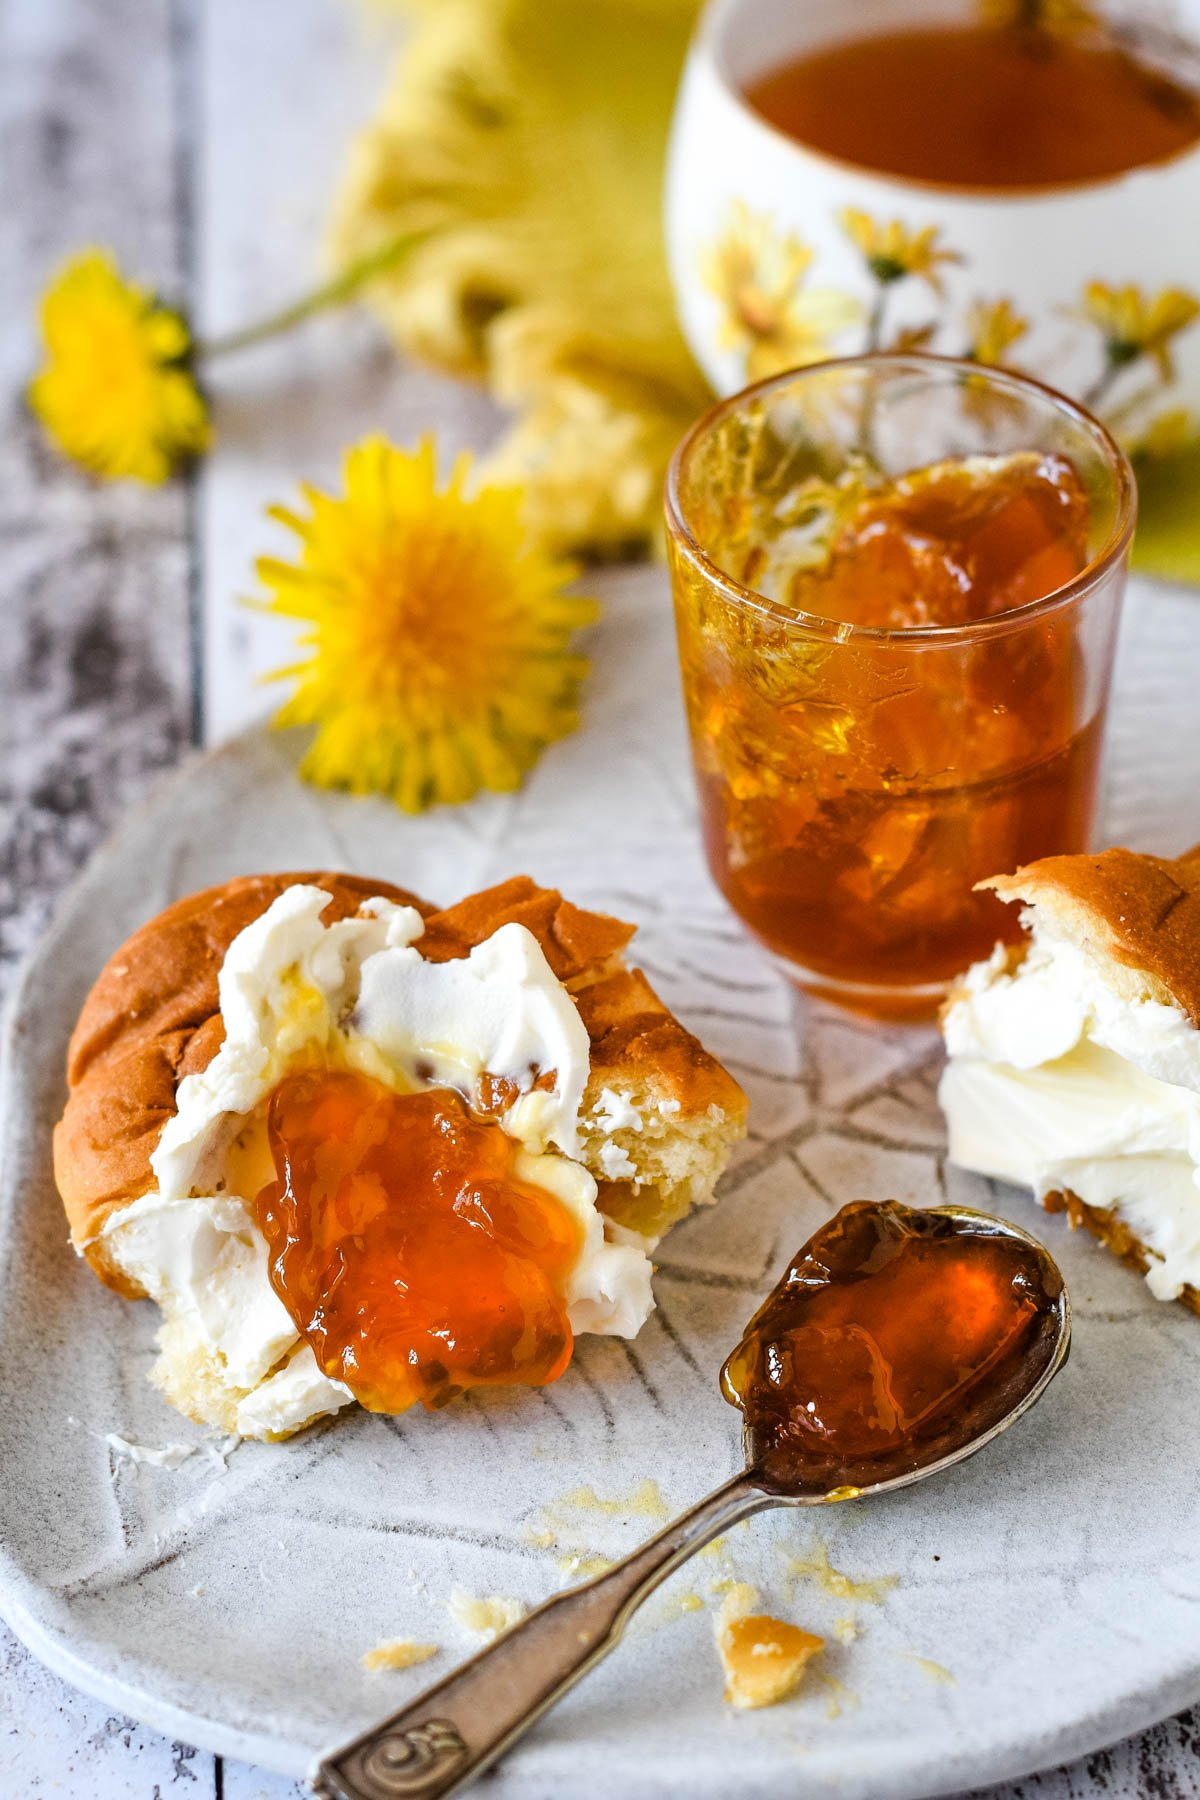 croissant with ricotta and jelly on top